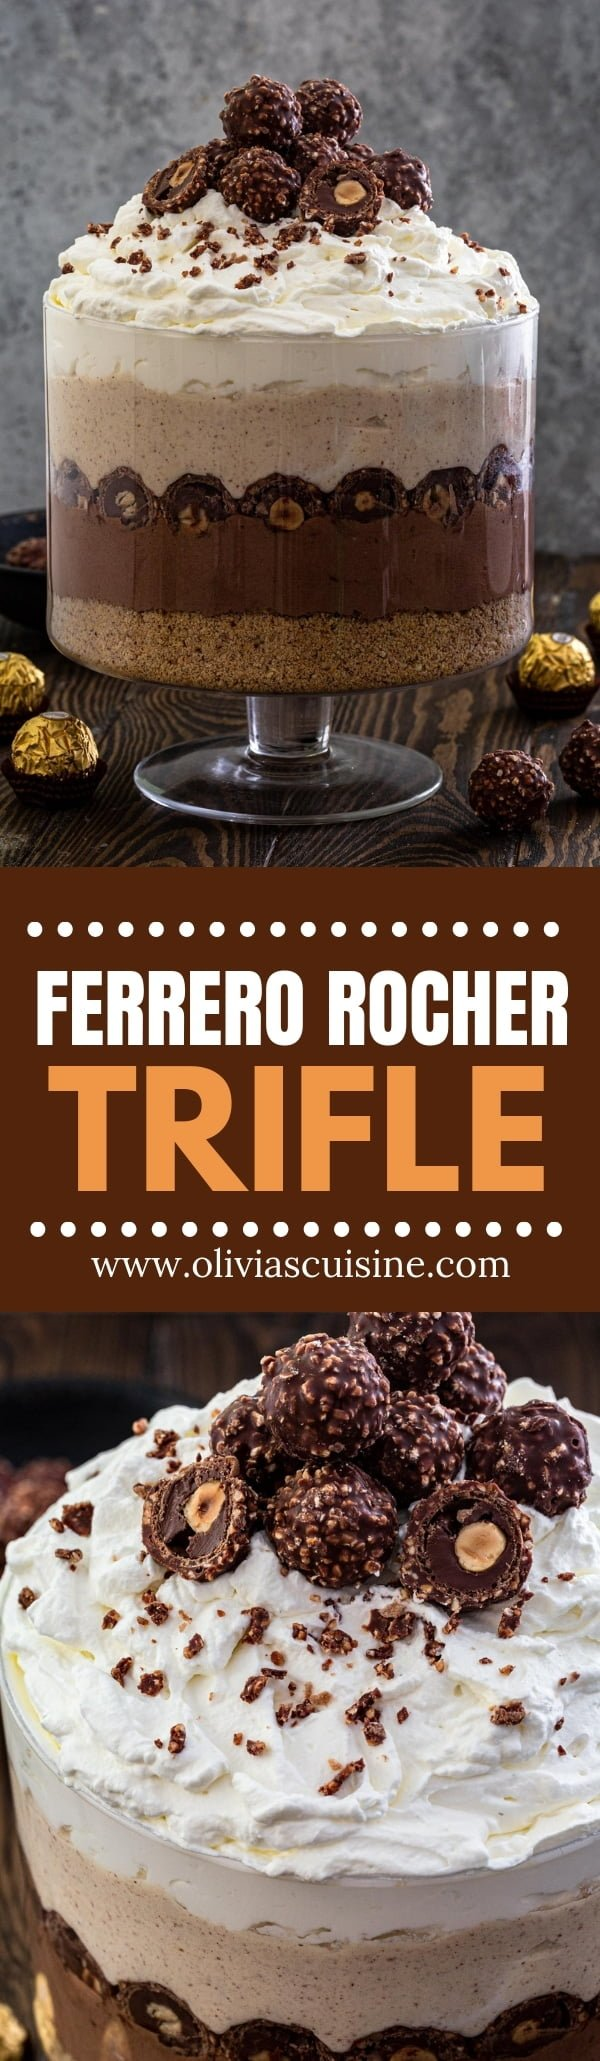 Ferrero Rocher Trifle | www.oliviascuisine.com | This Ferrero Rocher Trifle is a showstopper! Consisting of 6 layers of pure decadence, this trifle is beautiful, impressive and totally Instagrammable. (Recipe and food photography by @oliviascuisine.) #trifle #chocolate #desserts #ferrerorocher